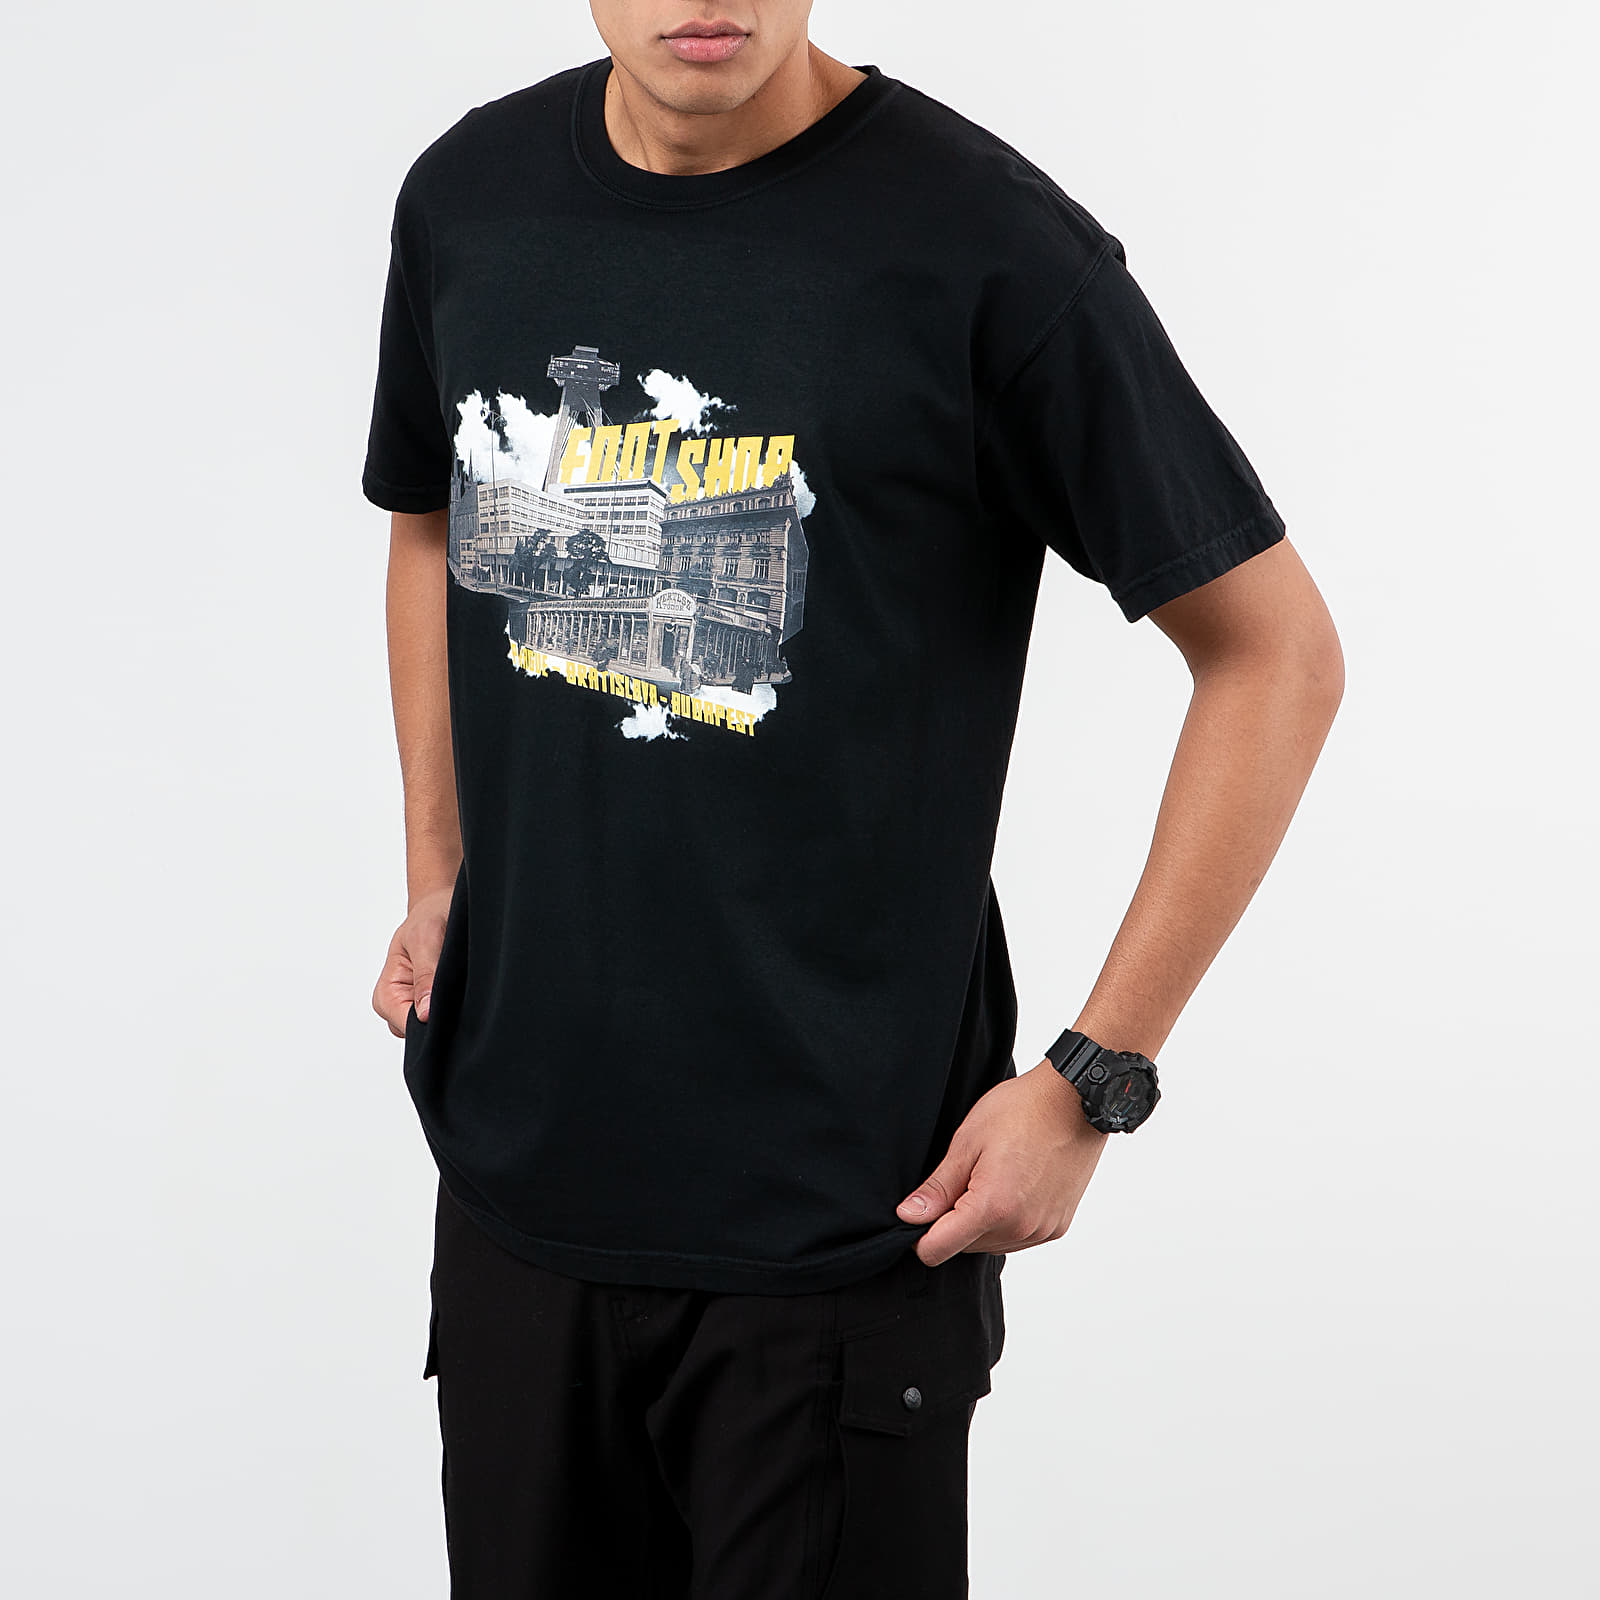 T-Shirts Footshop Stores & Cities Tee Black